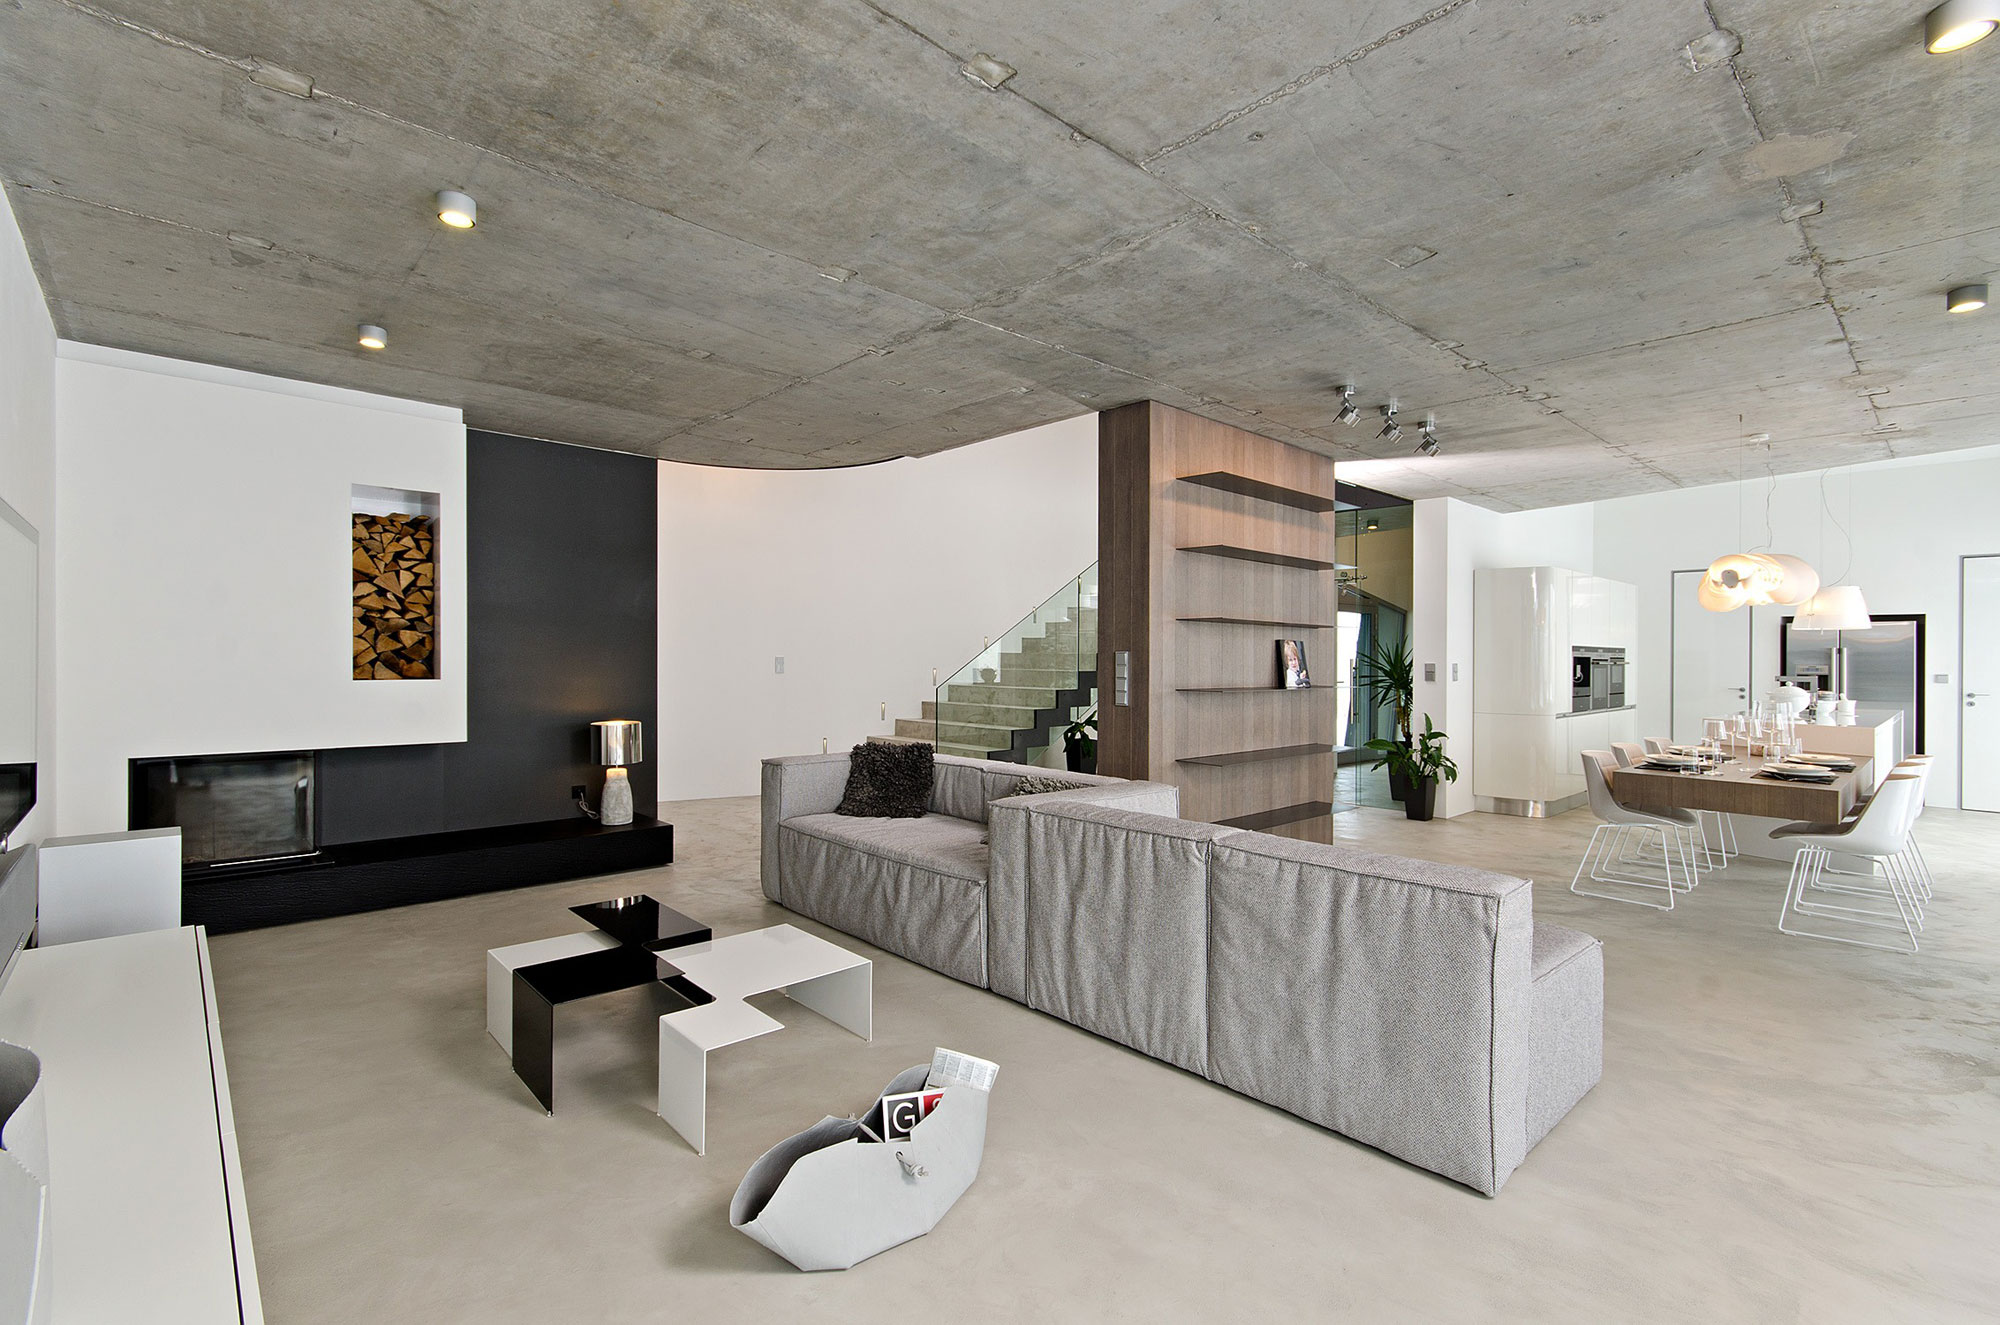 Modern concrete interior by ooox for Modern interior